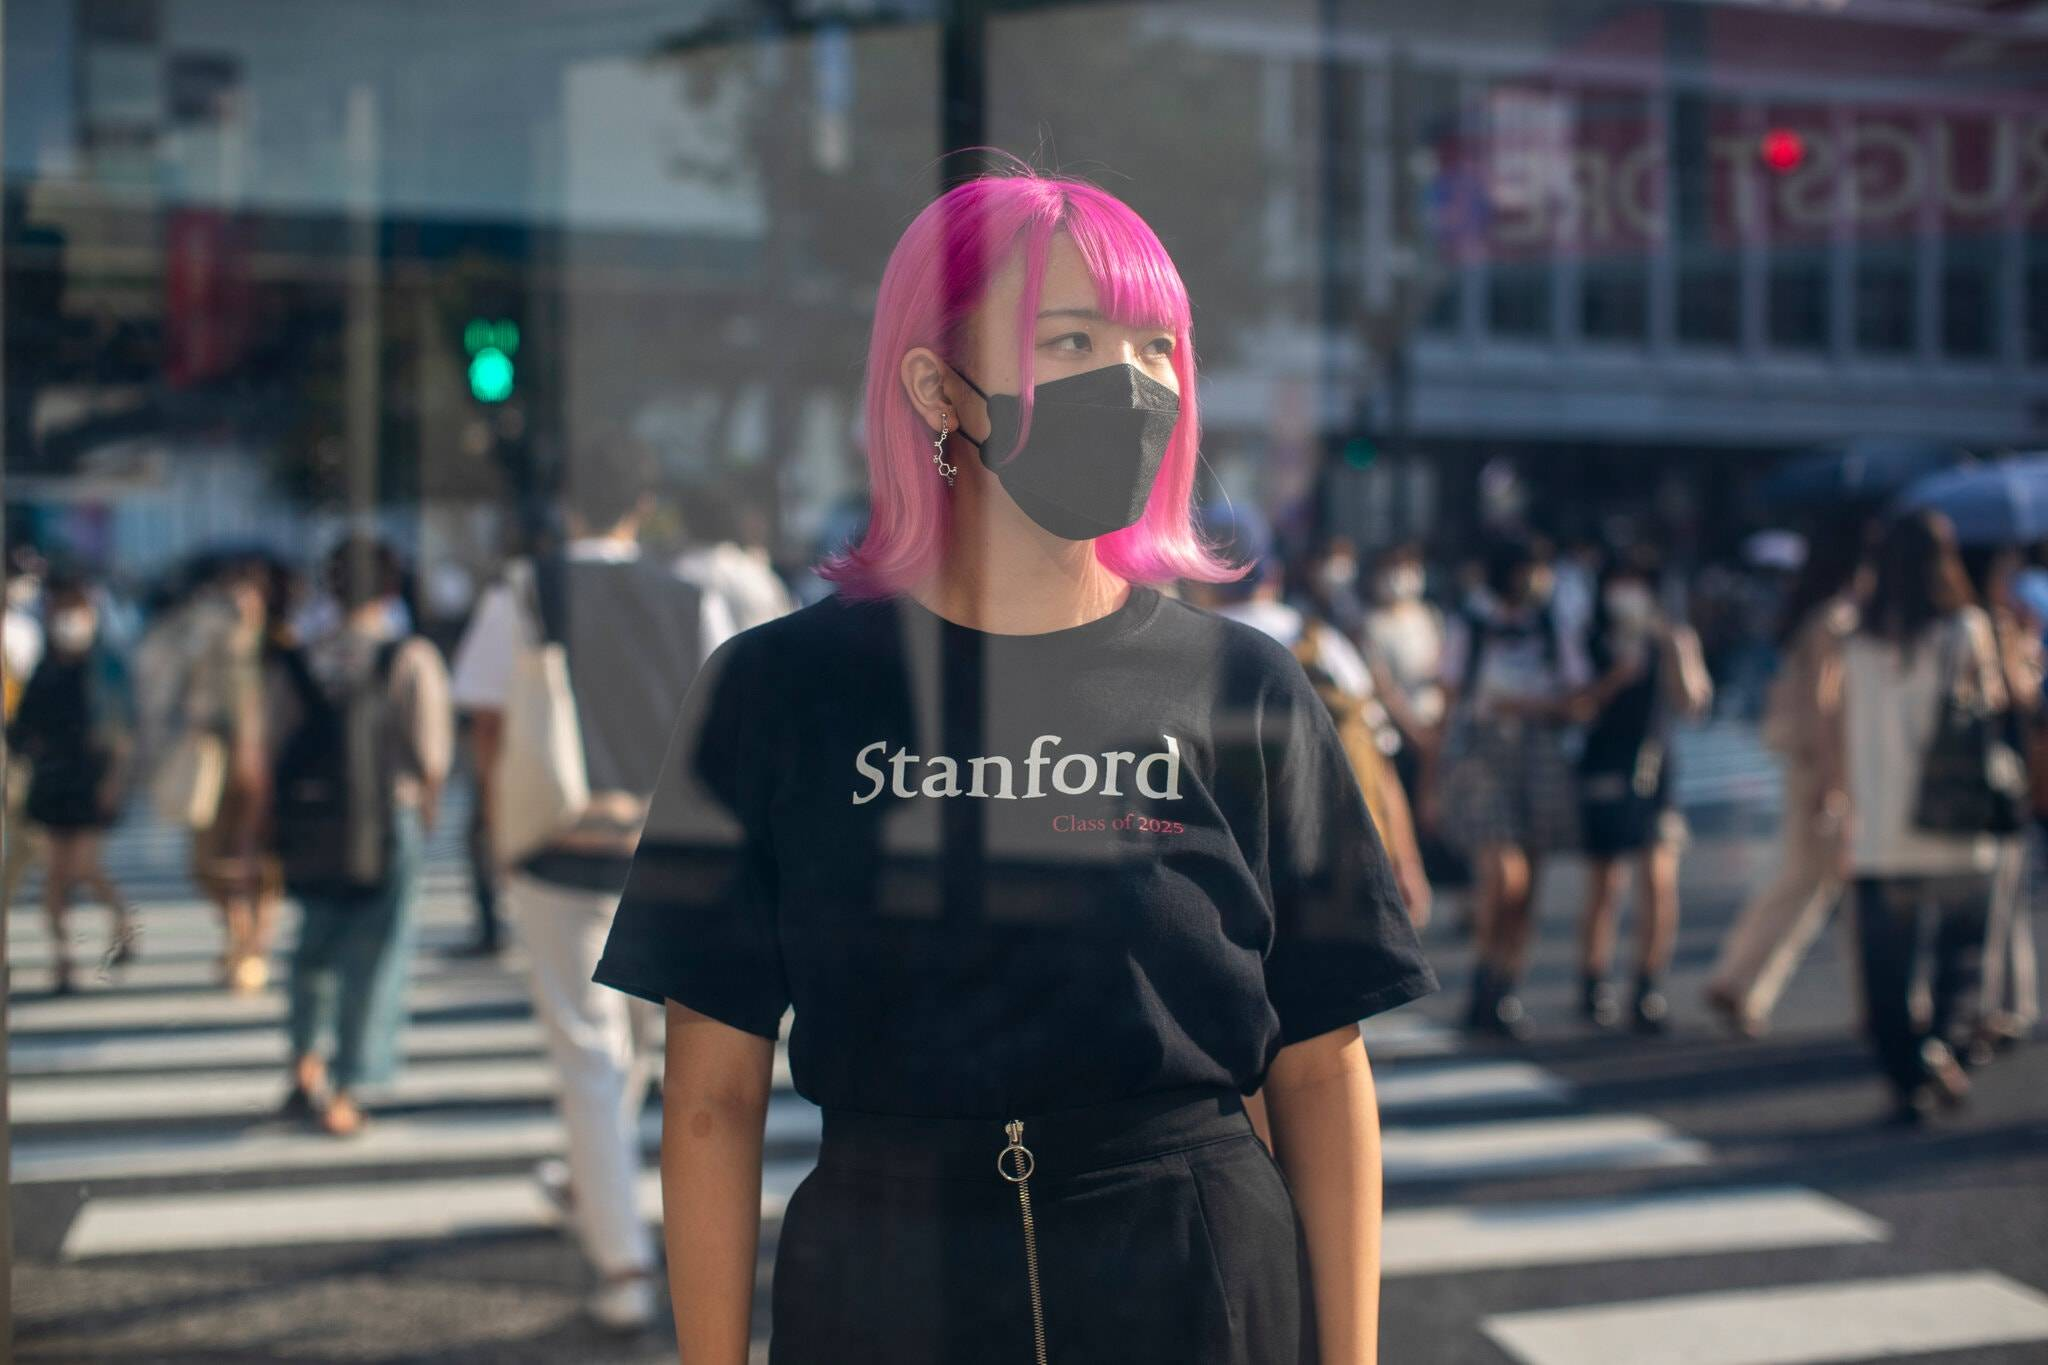 Anna Matsumoto is headed to Stanford to study engineering. A bit of a rebel against Japan's cultural expectations, she dyed her hair after her graduation.   SHIHO FUKADA / THE NEW YORK TIMES